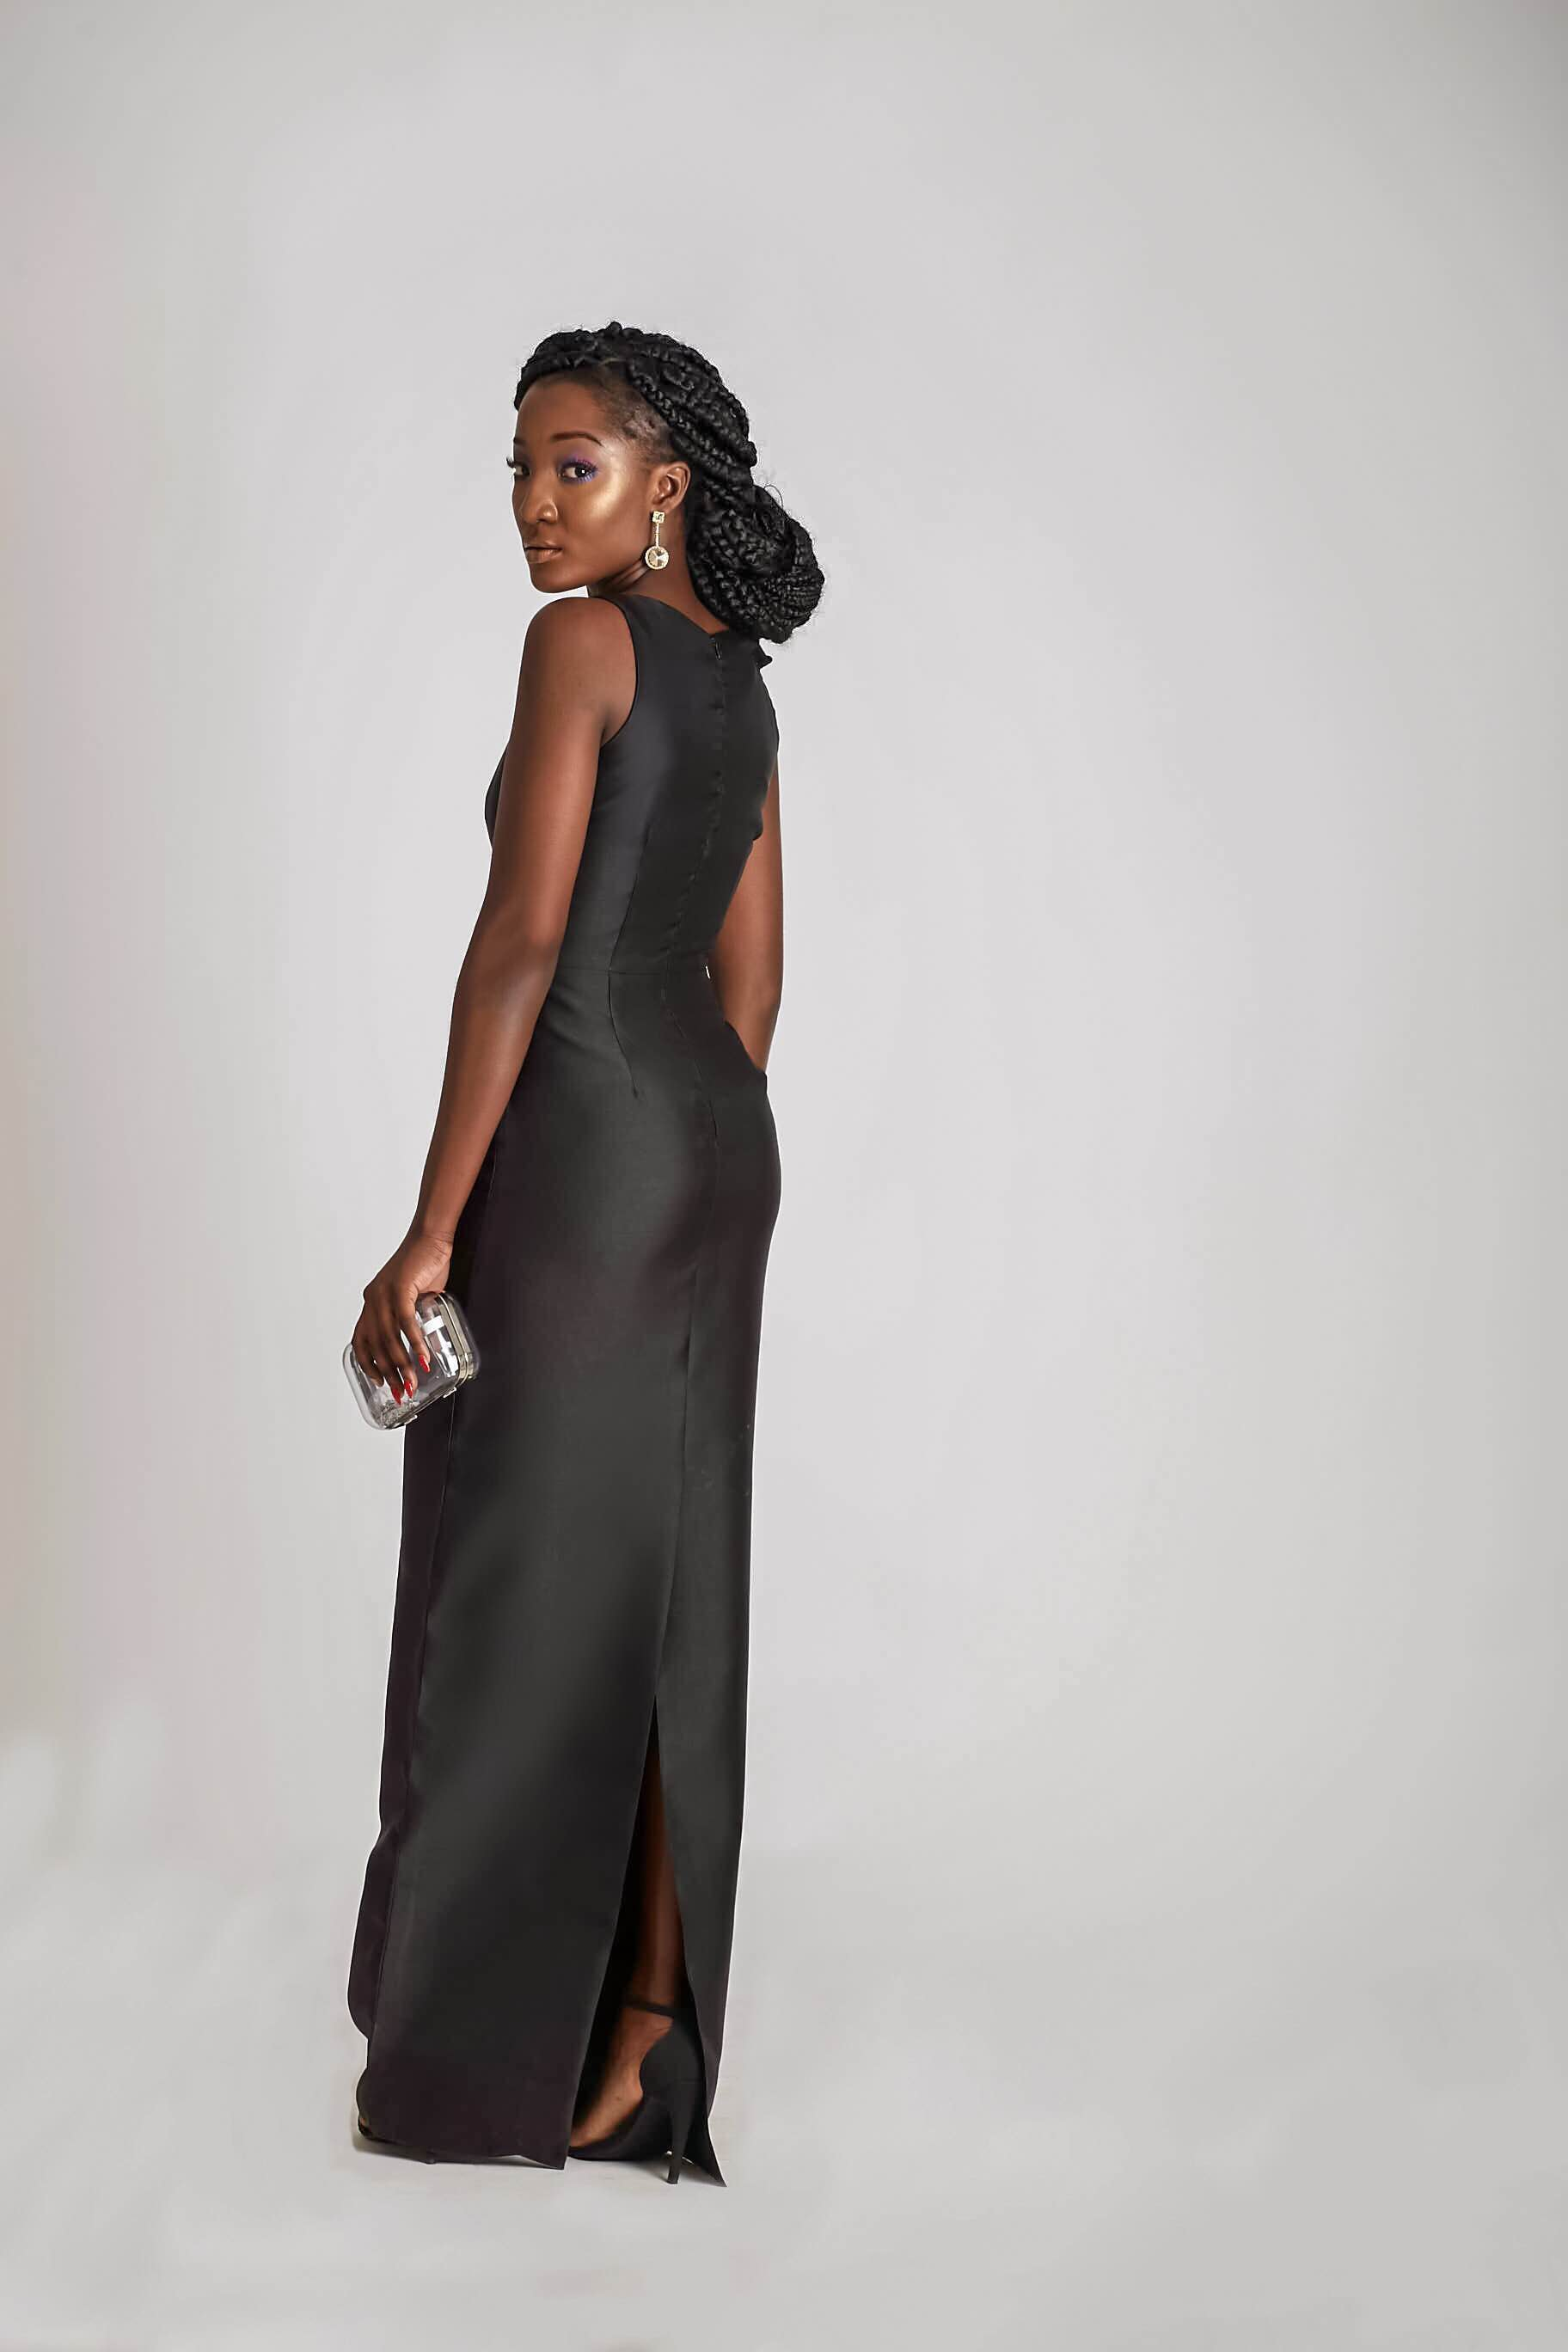 Imad Eduso - BN Style - Collection Lookbook - BellaNaija.com 019